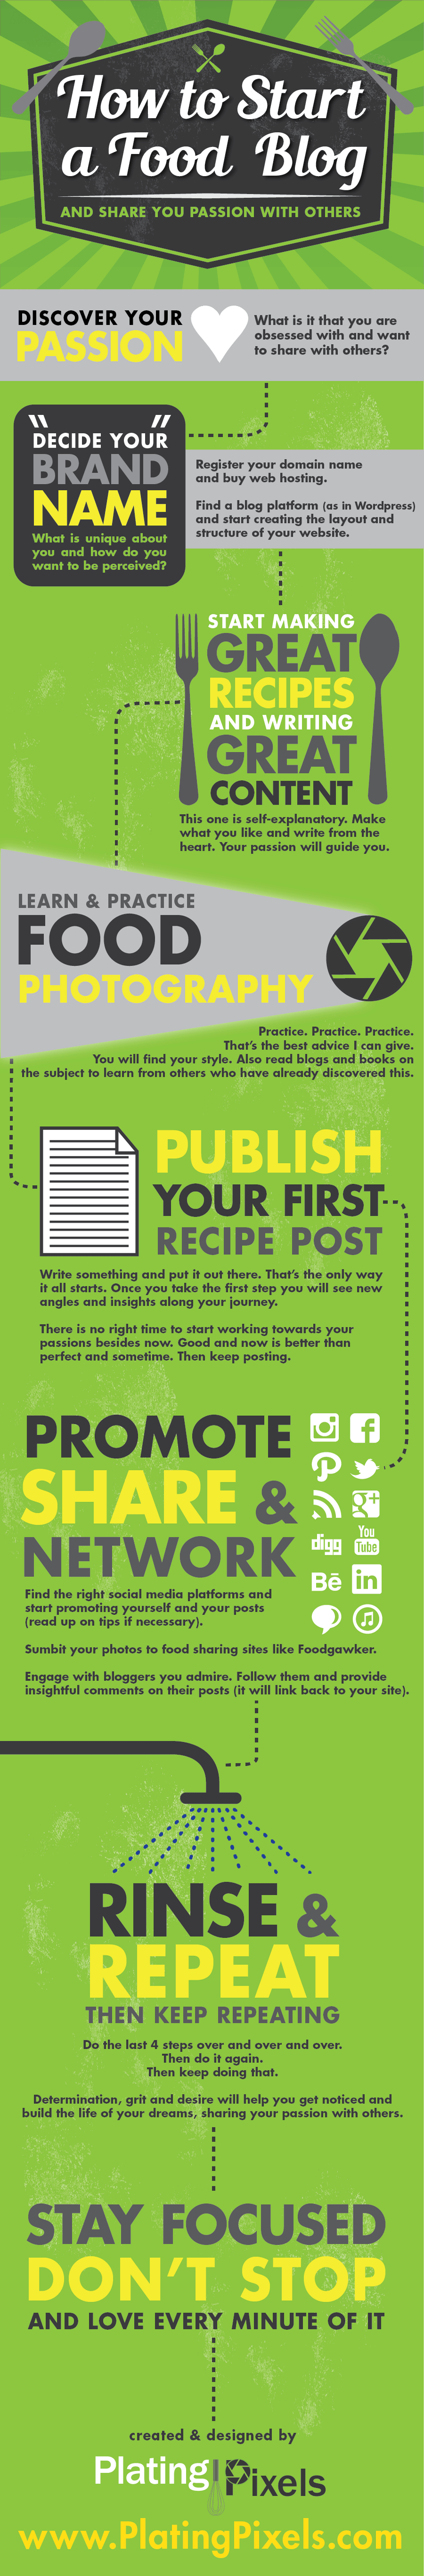 How to Start a Food Blog Infographic